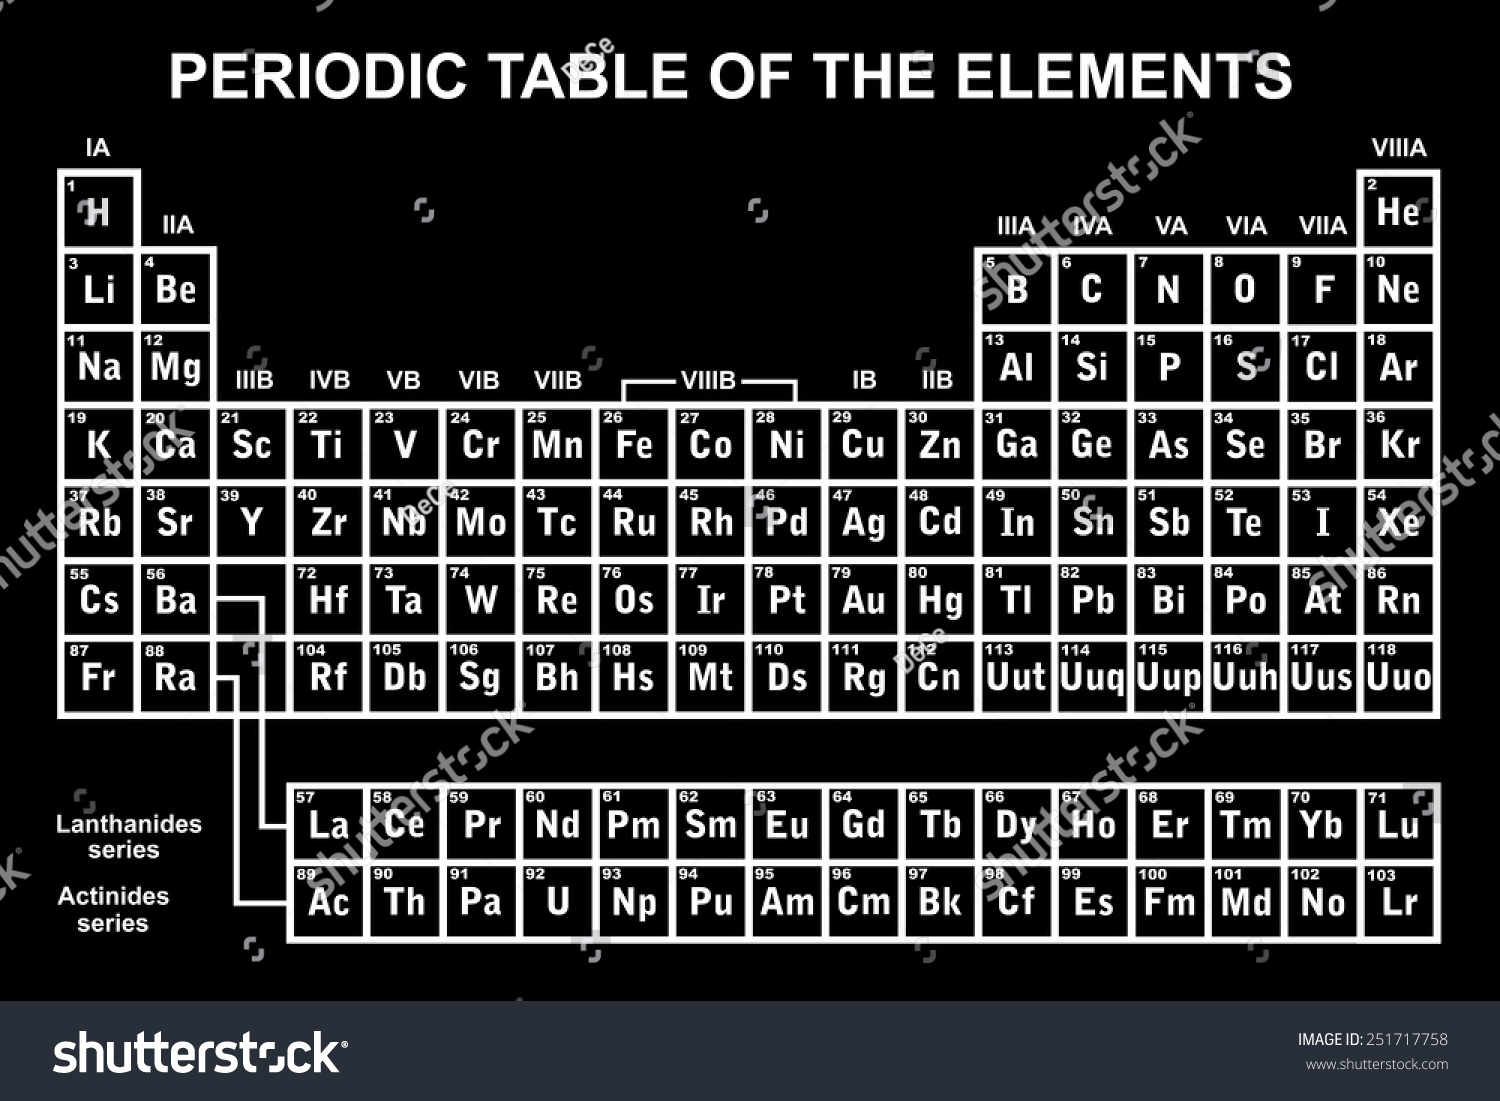 Periodic table elements black background stock vector 251717758 periodic table of the elements with black in background gamestrikefo Gallery